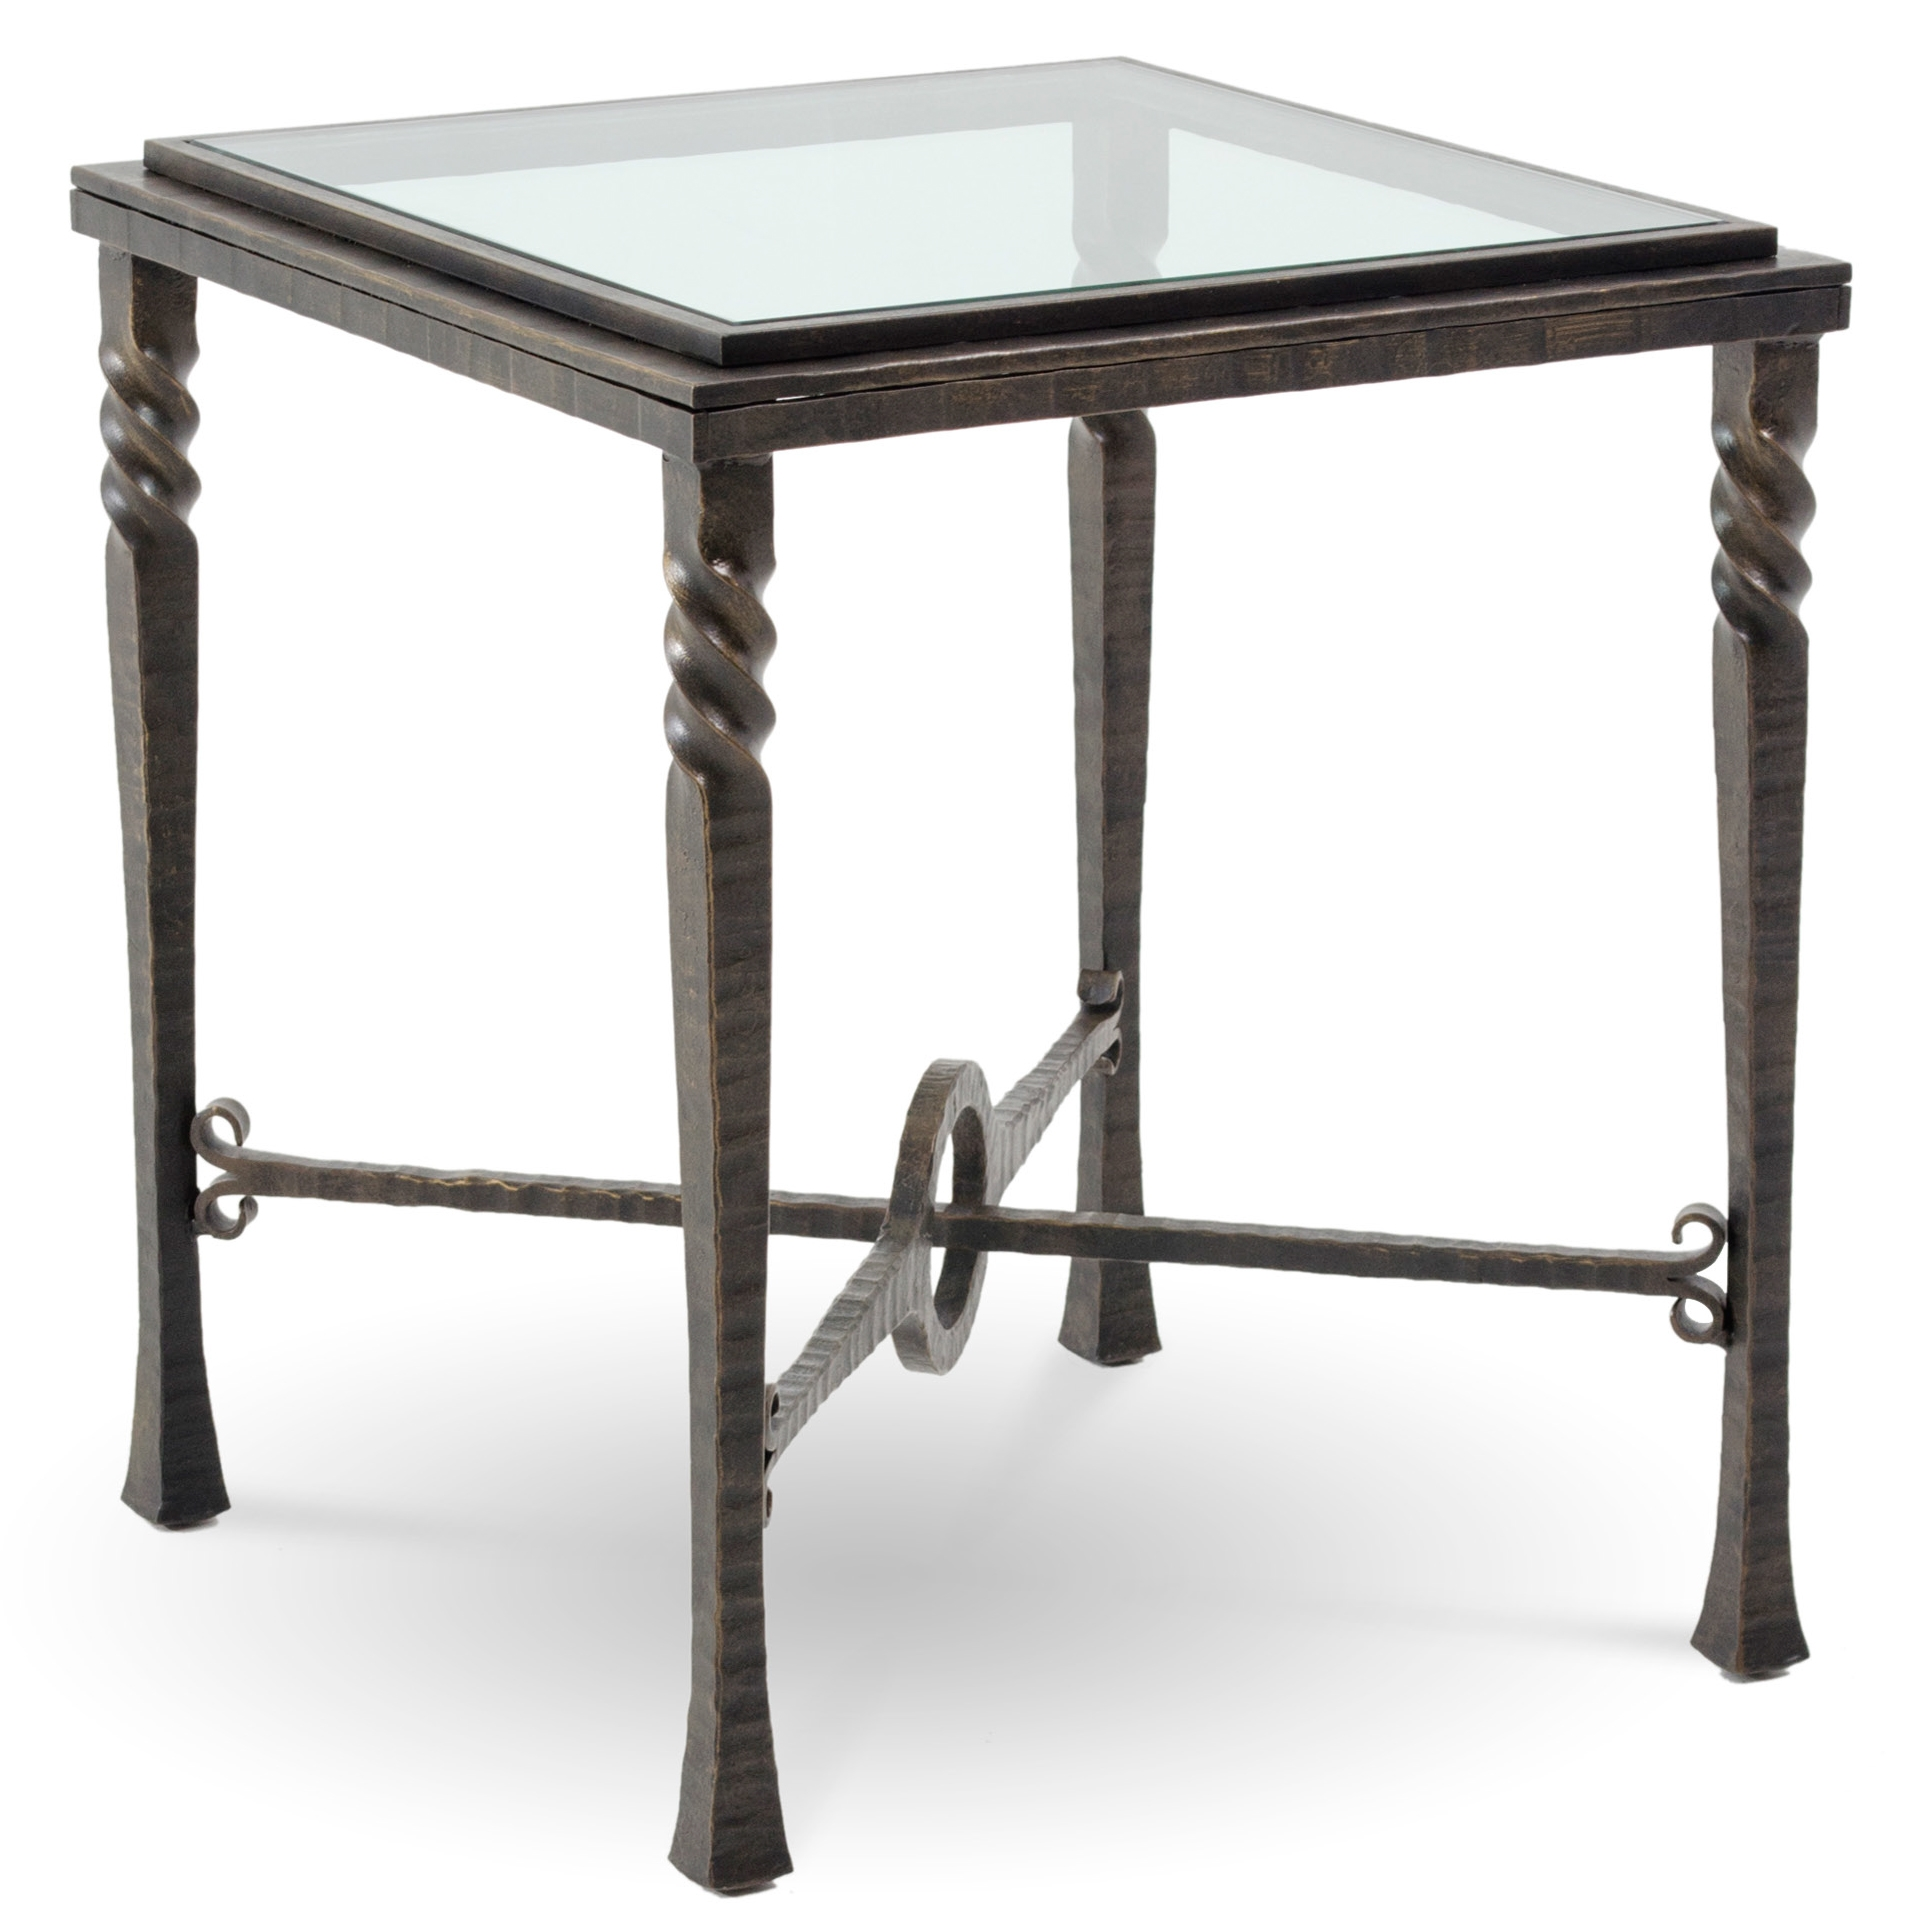 pictured is the omega square end table with glass table